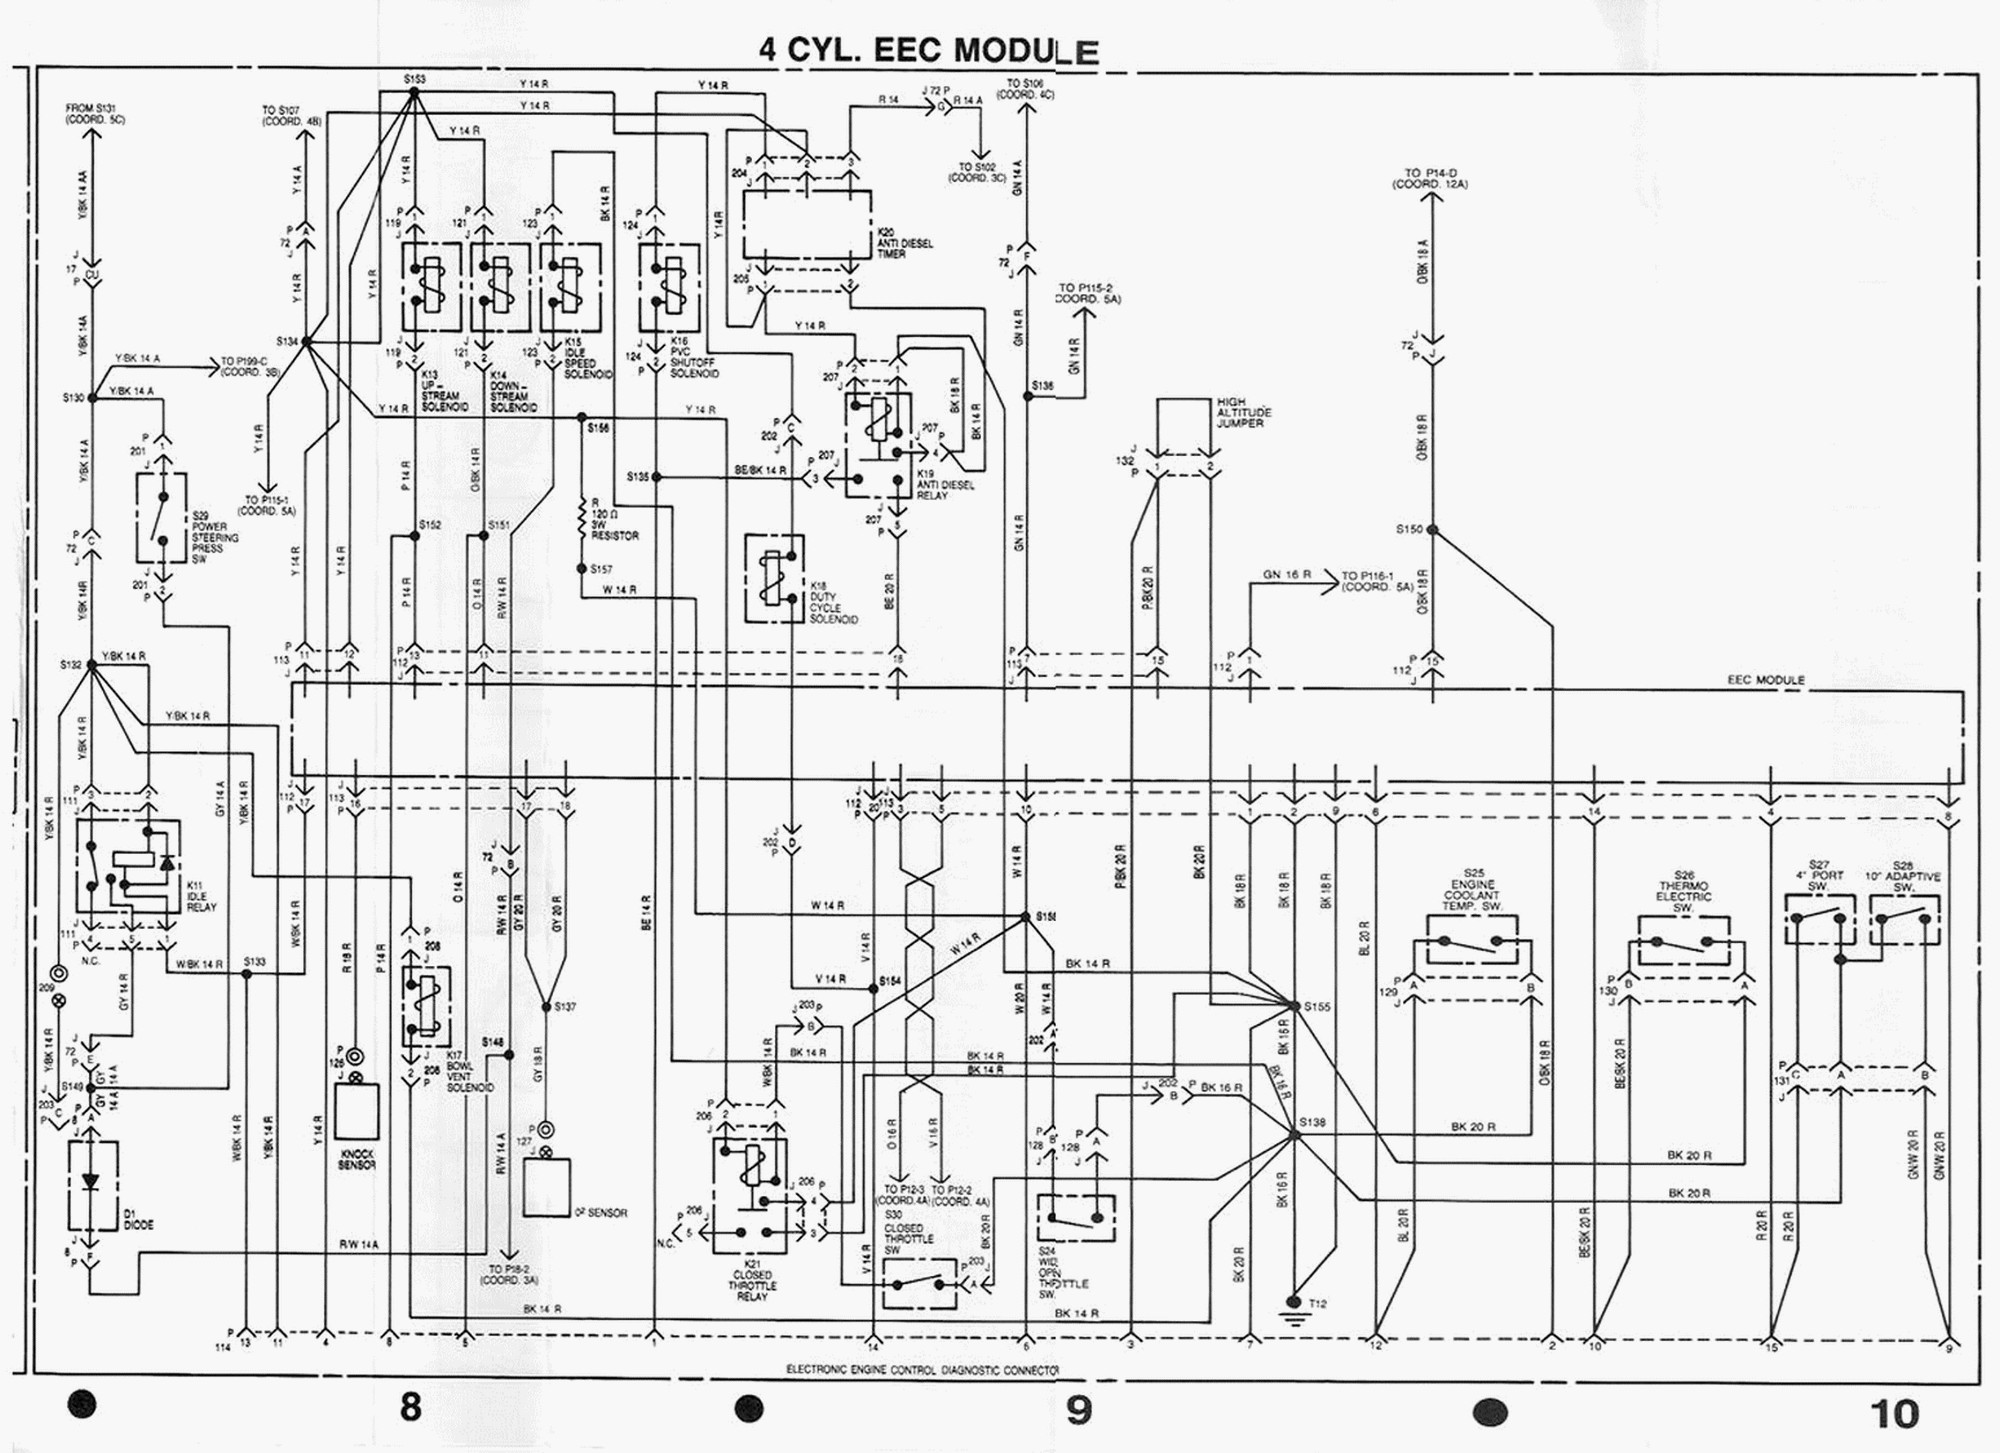 1974 Amc Javelin Wiring Diagram Amx Schematic Diagrams Egal U2022 1968